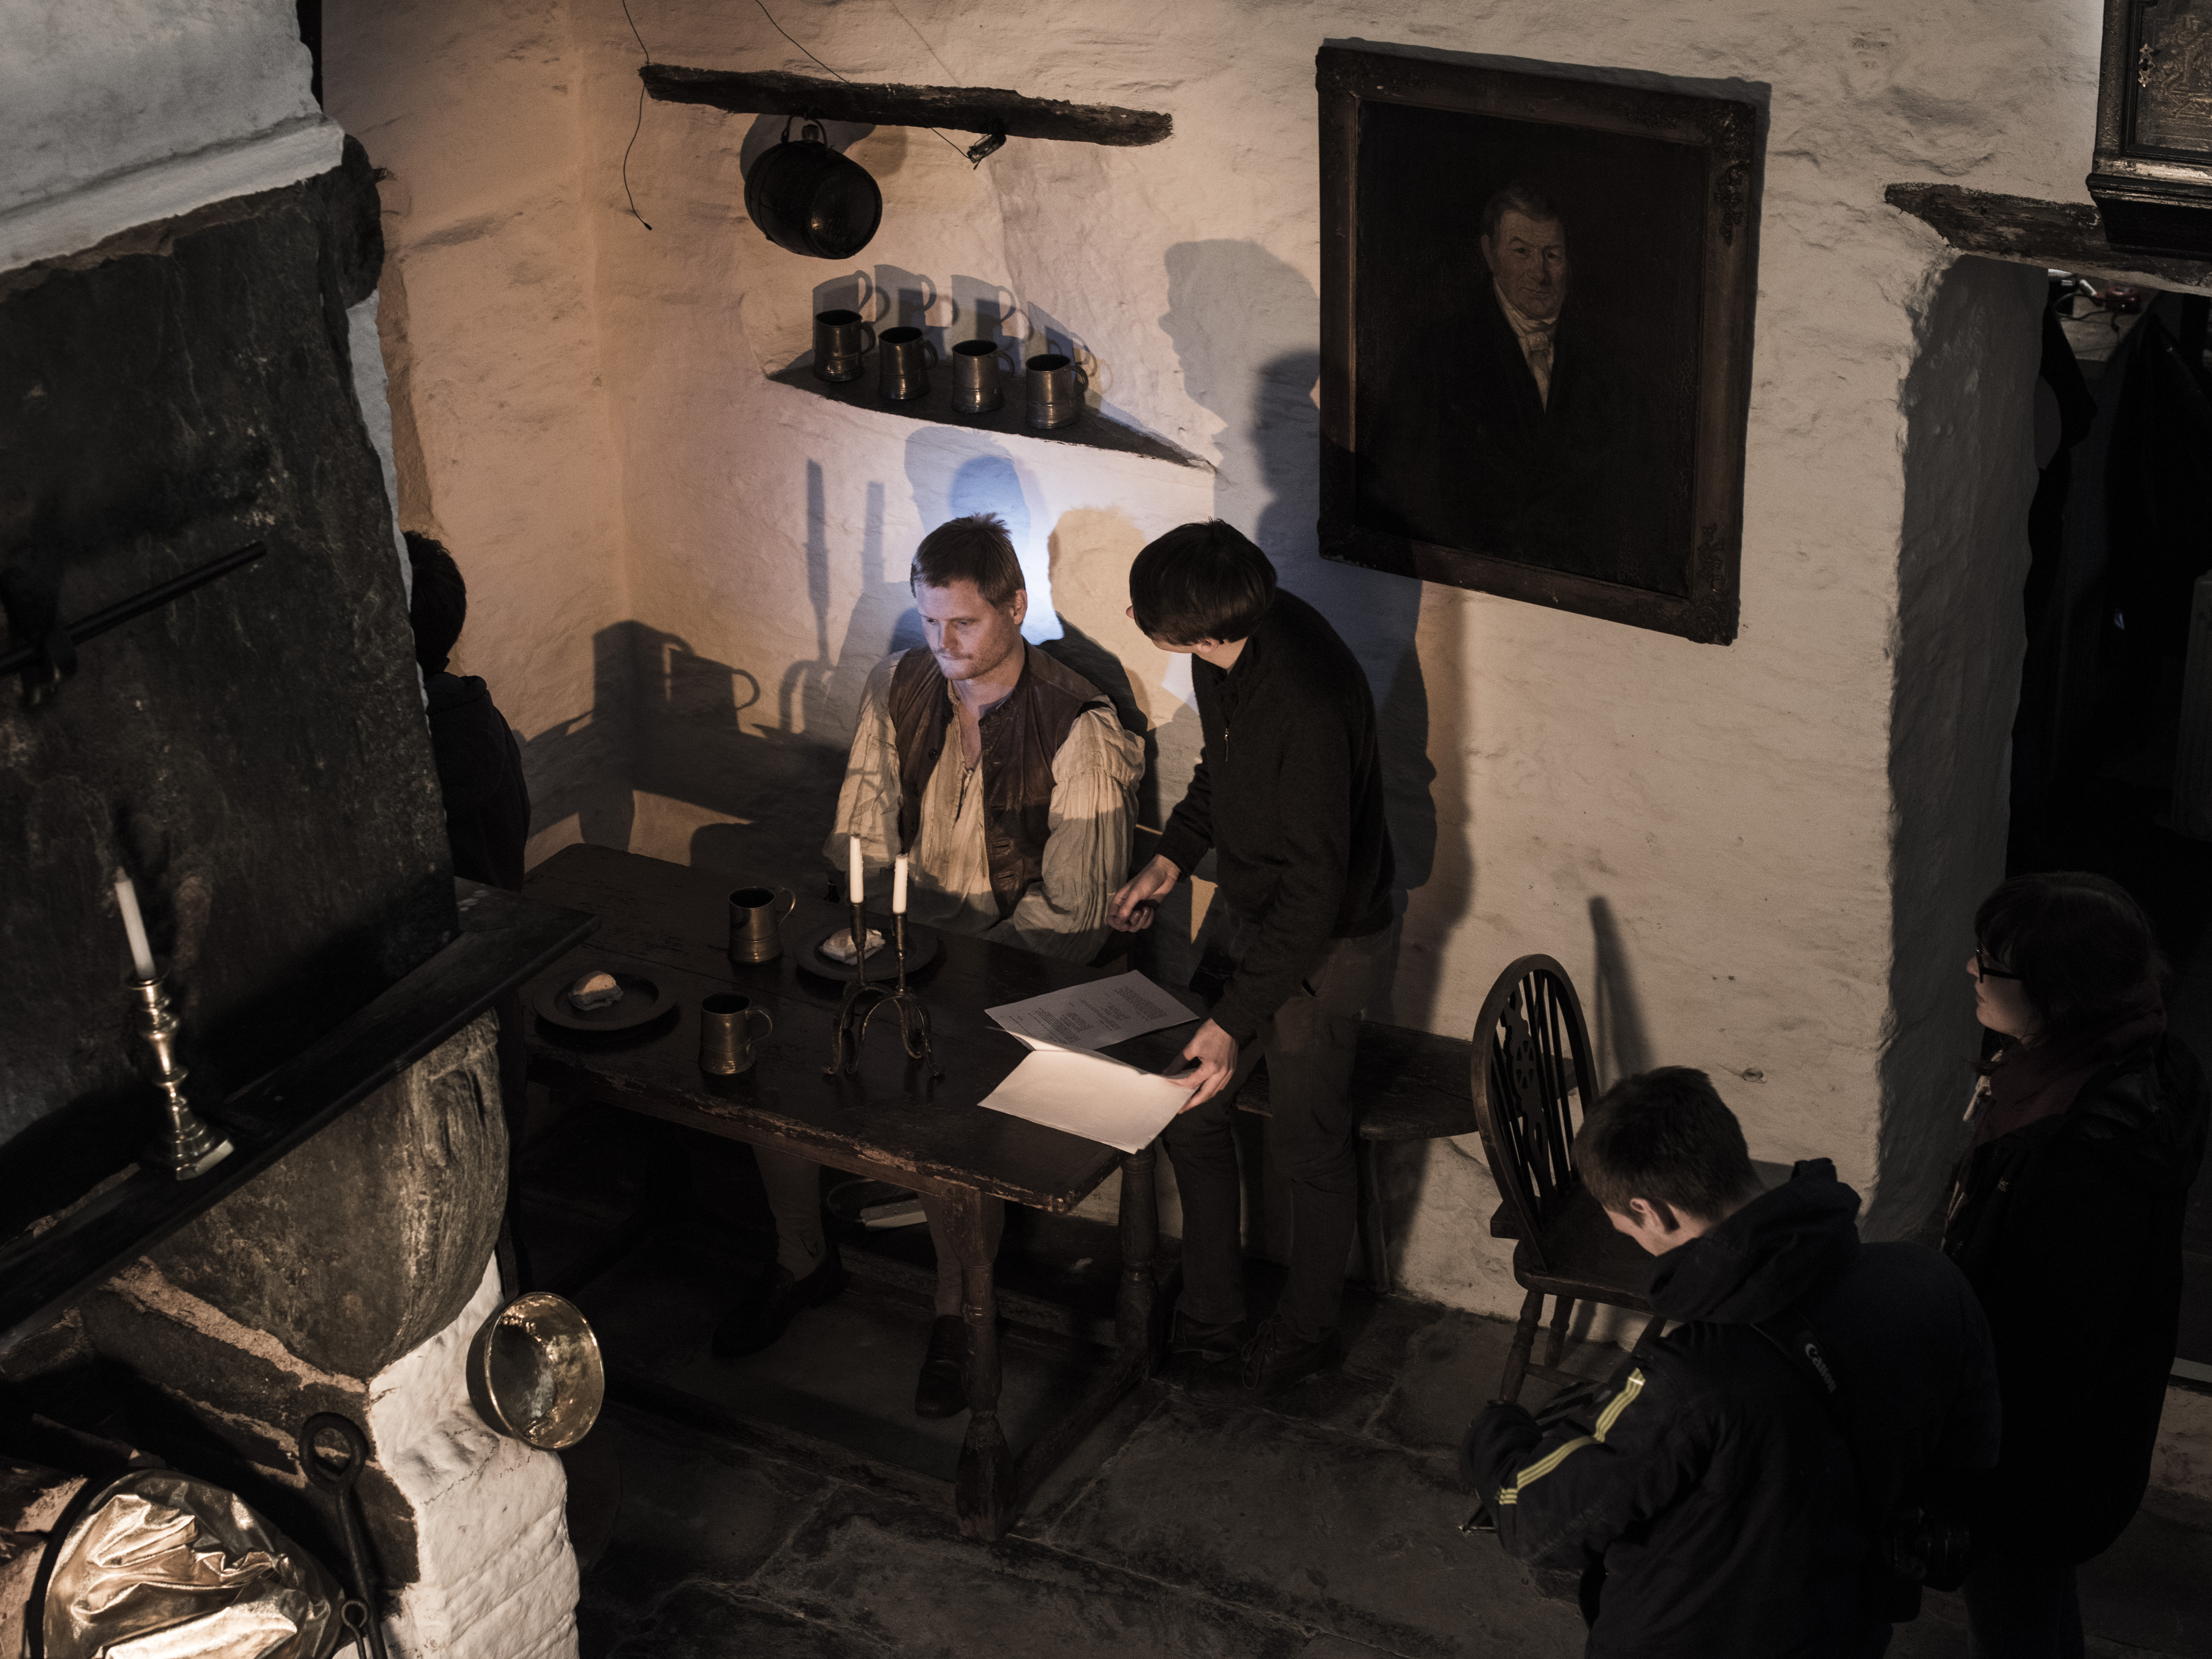 Oliver Chater and Ryan Cooper in The Highwayman (2016)